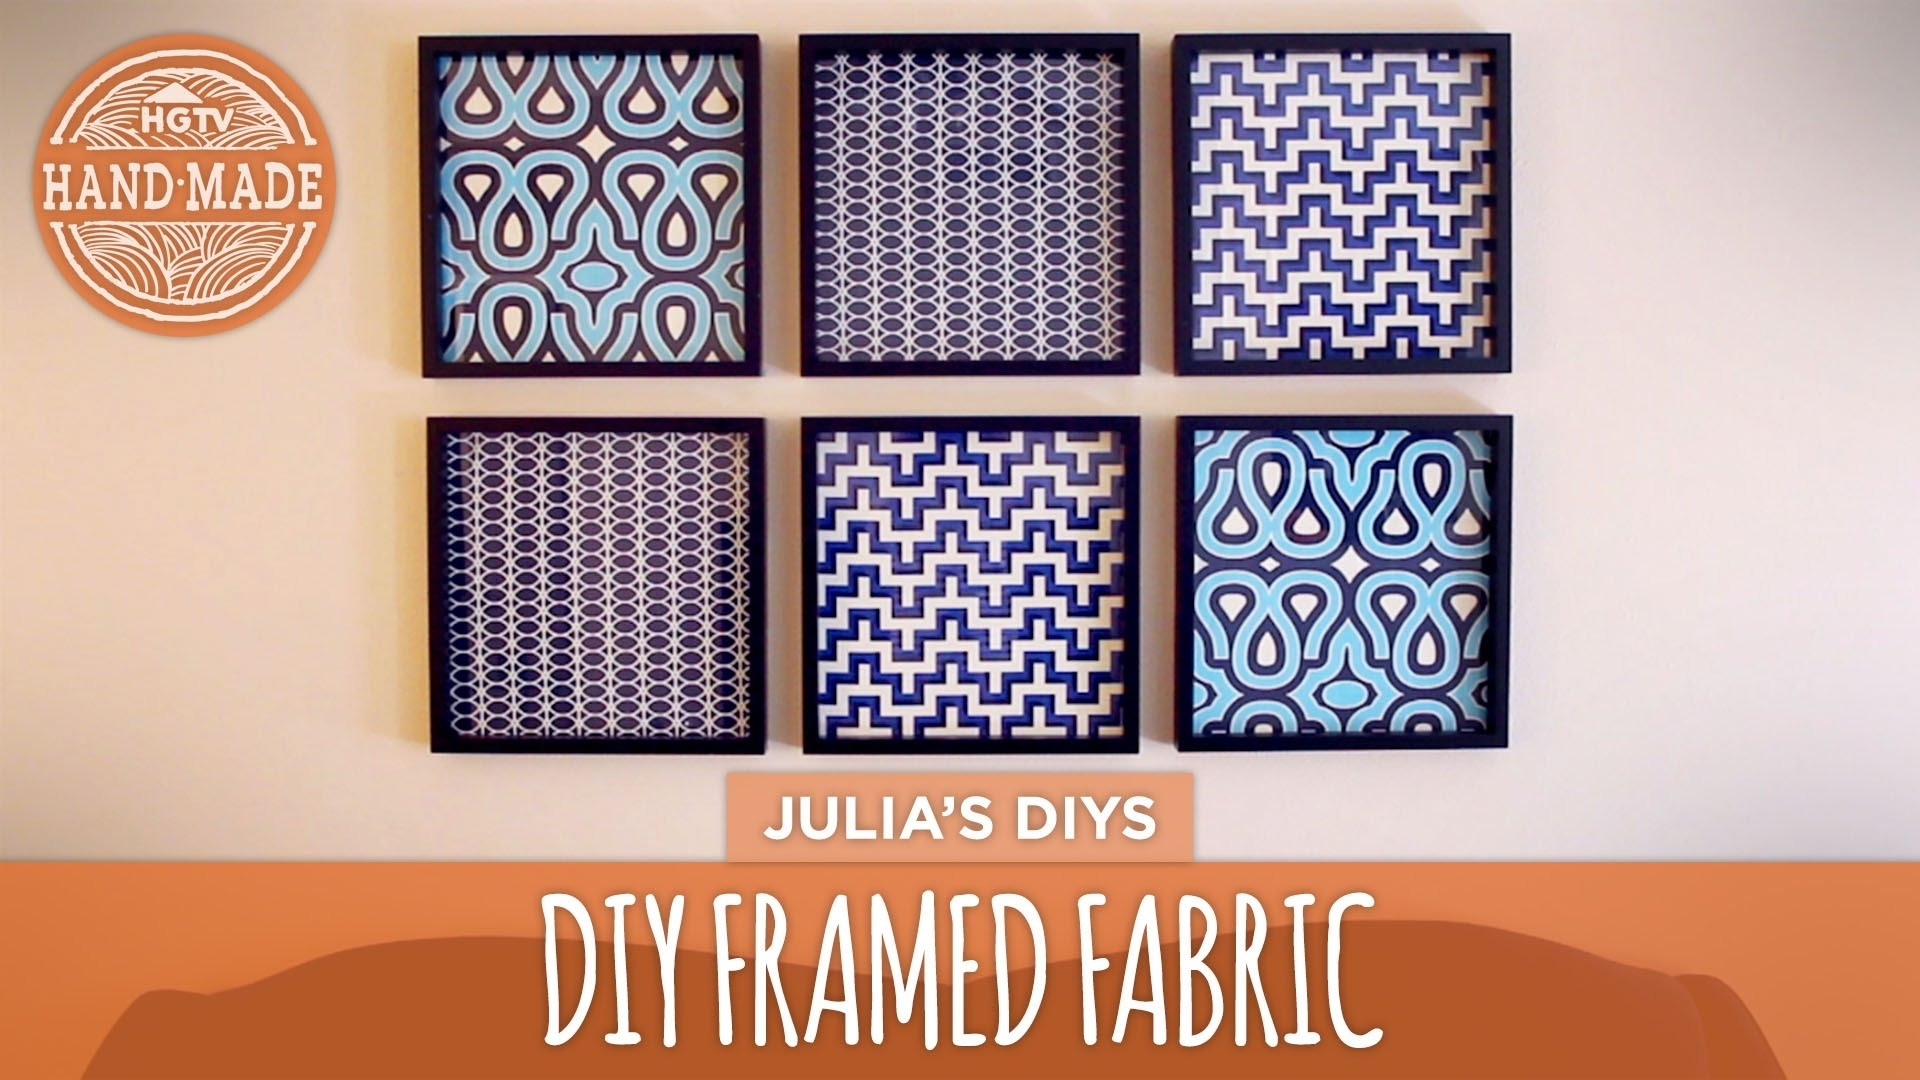 Diy Framed Fabric Gallery Wall – Hgtv Handmade – Youtube With 2018 Batik Fabric Wall Art (View 6 of 15)